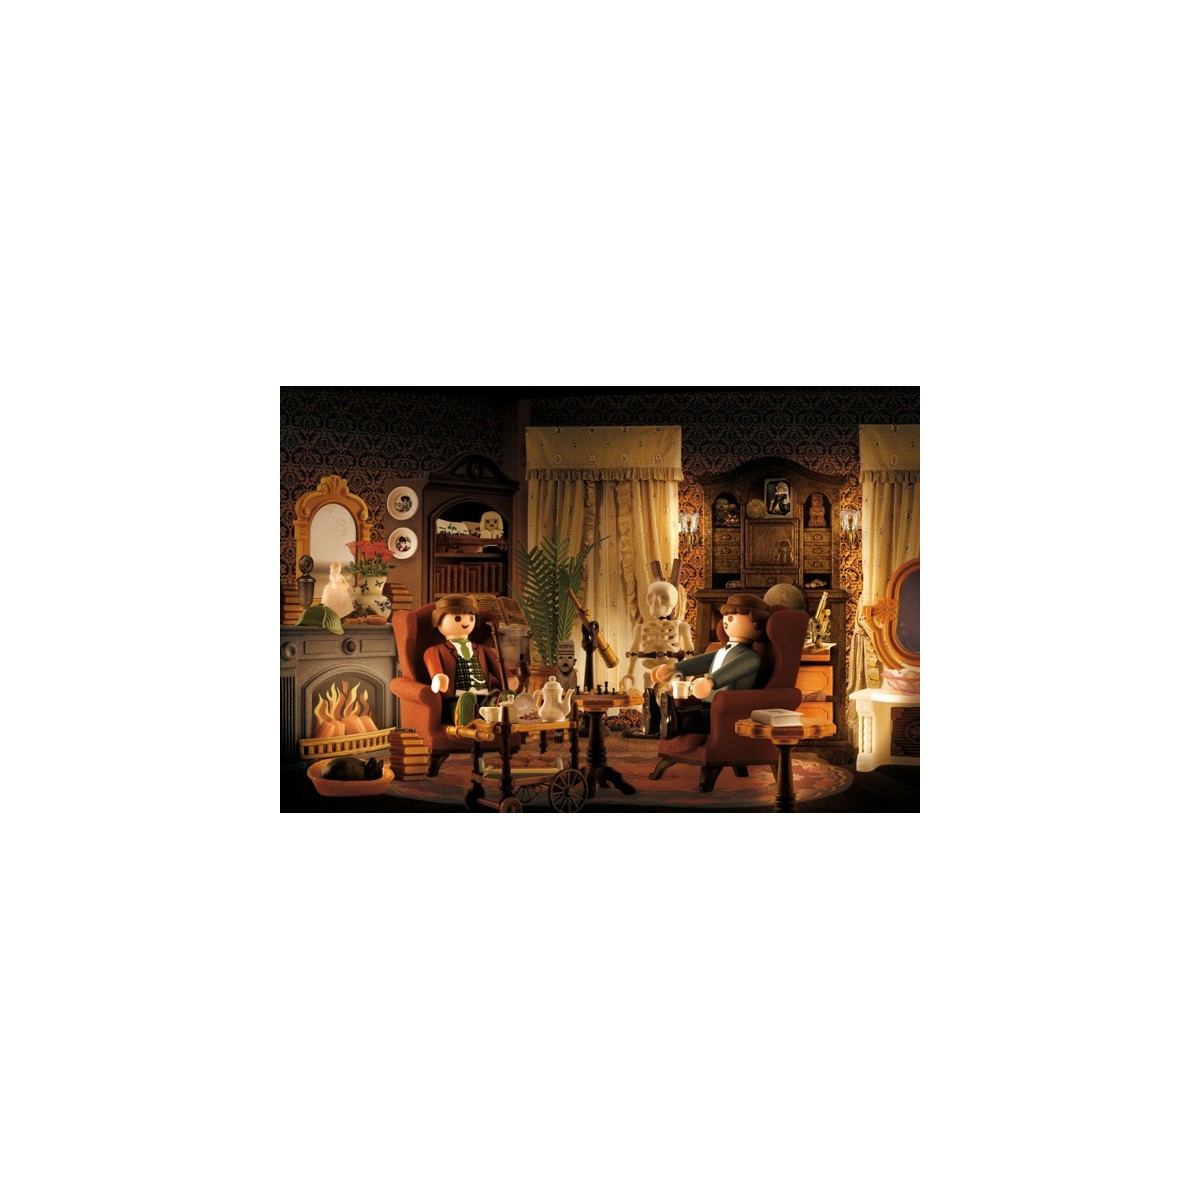 Tableau humoristique salon de sherlock holmes par richard for Decoration murale salon